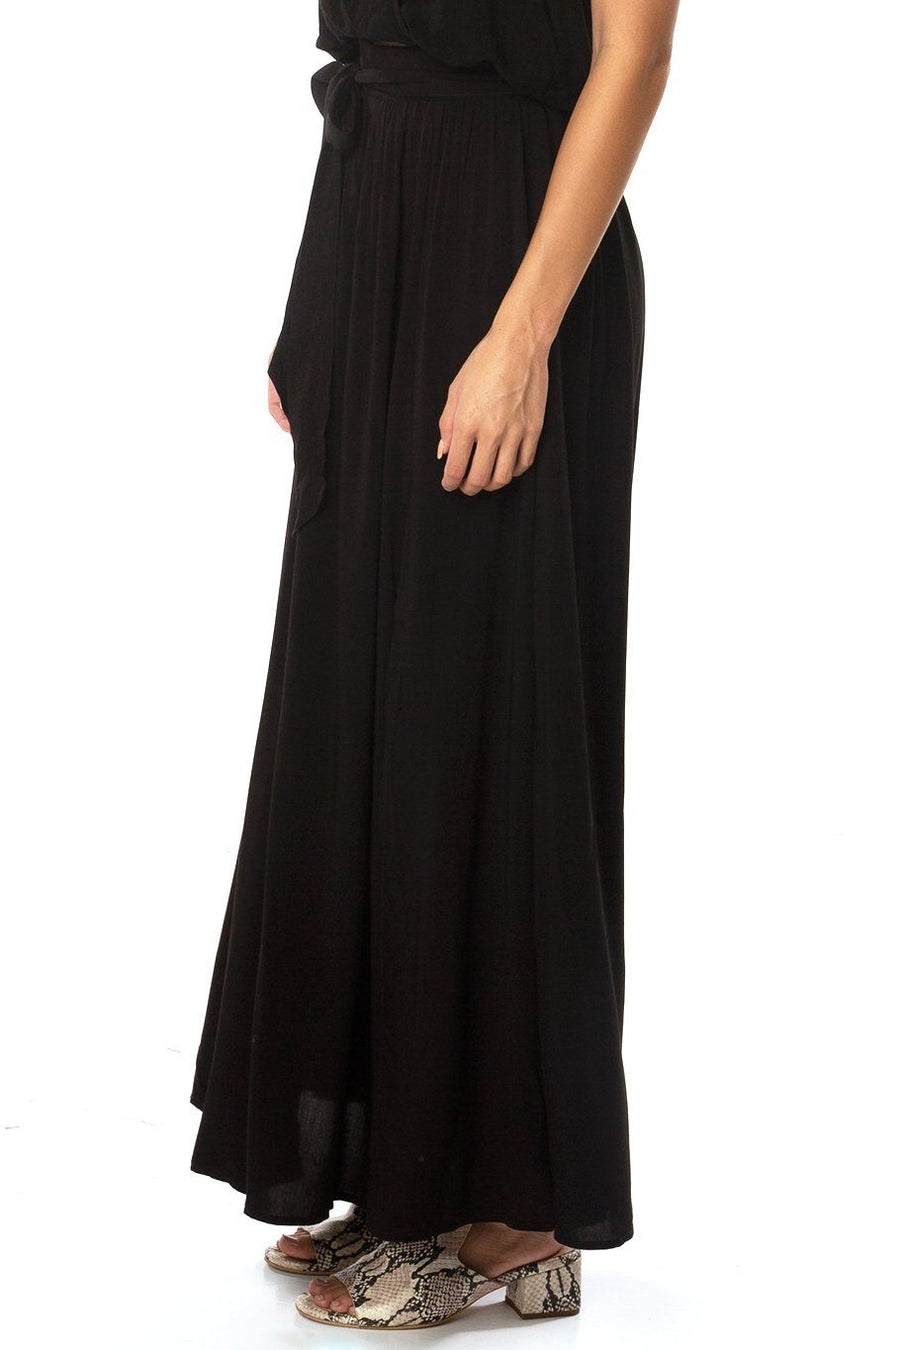 Amalfi Double Slit Skirt - Black - Shore